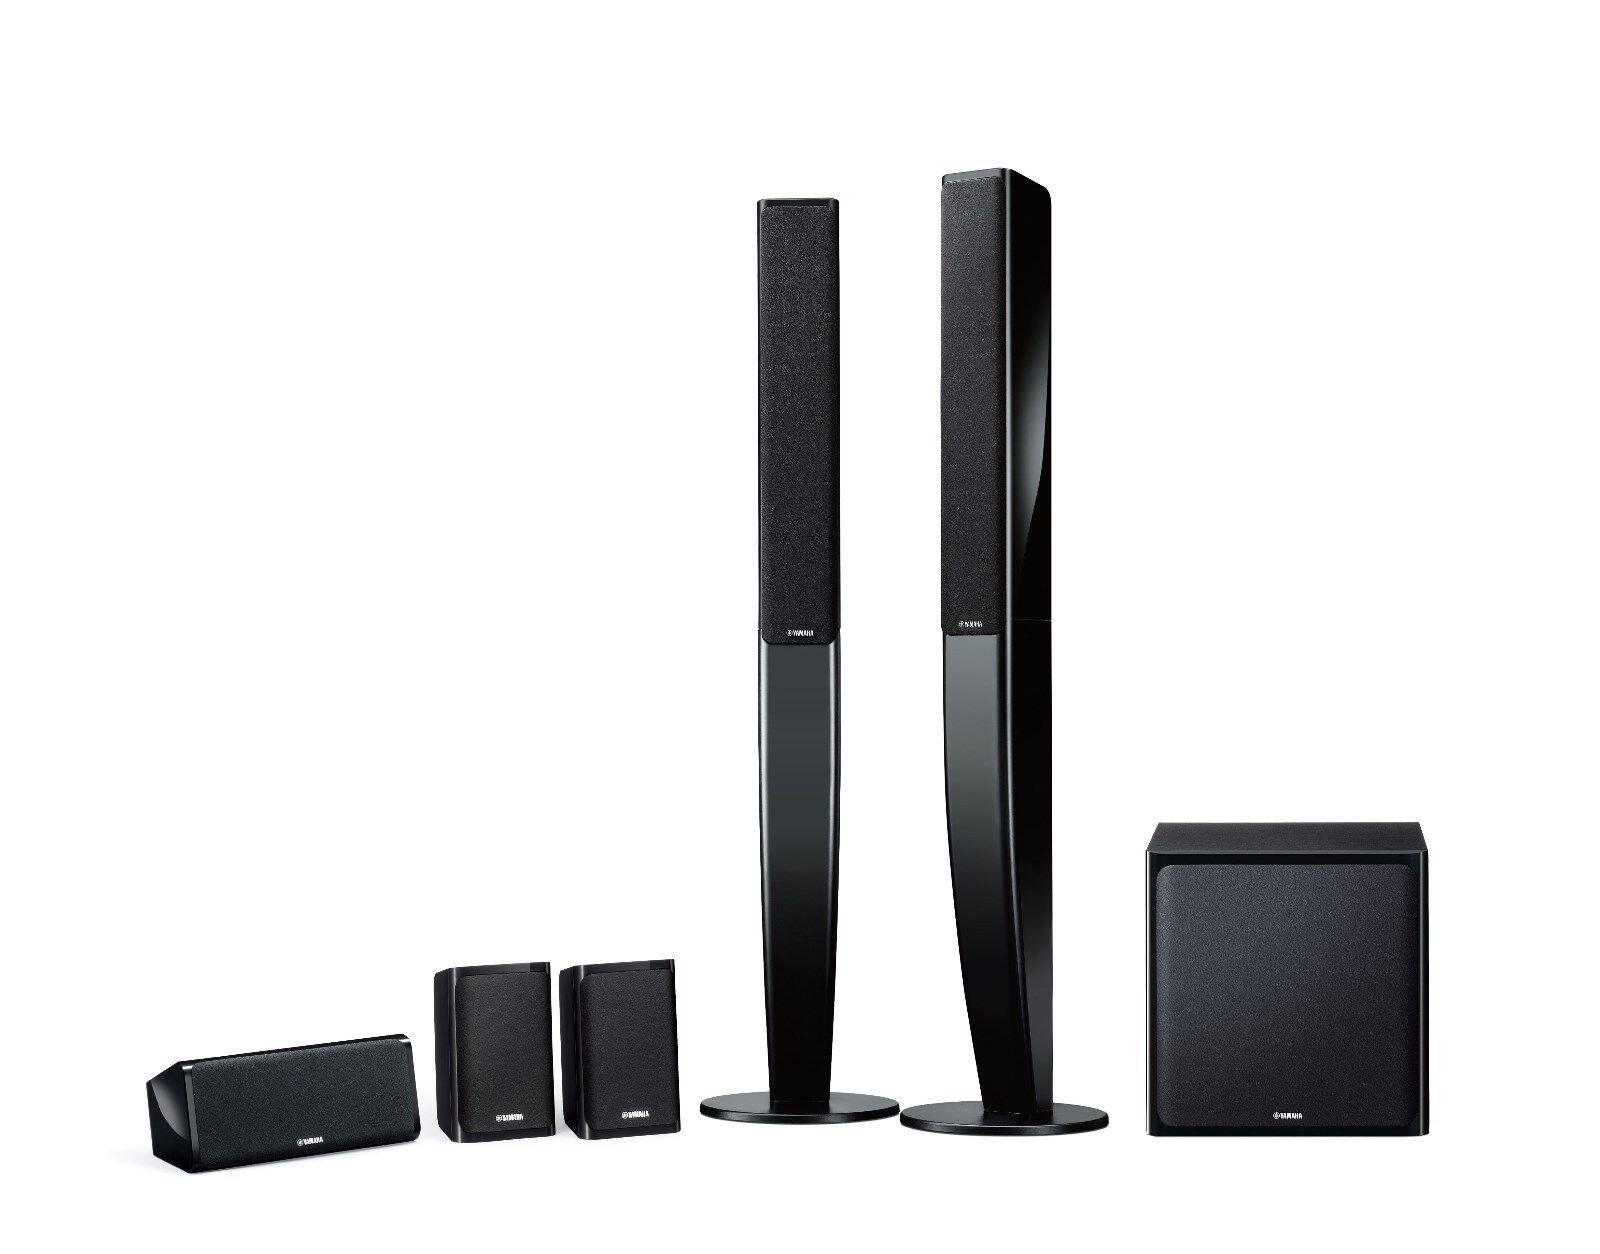 NEW - Yamaha 5.1 Channel Tower Speaker System